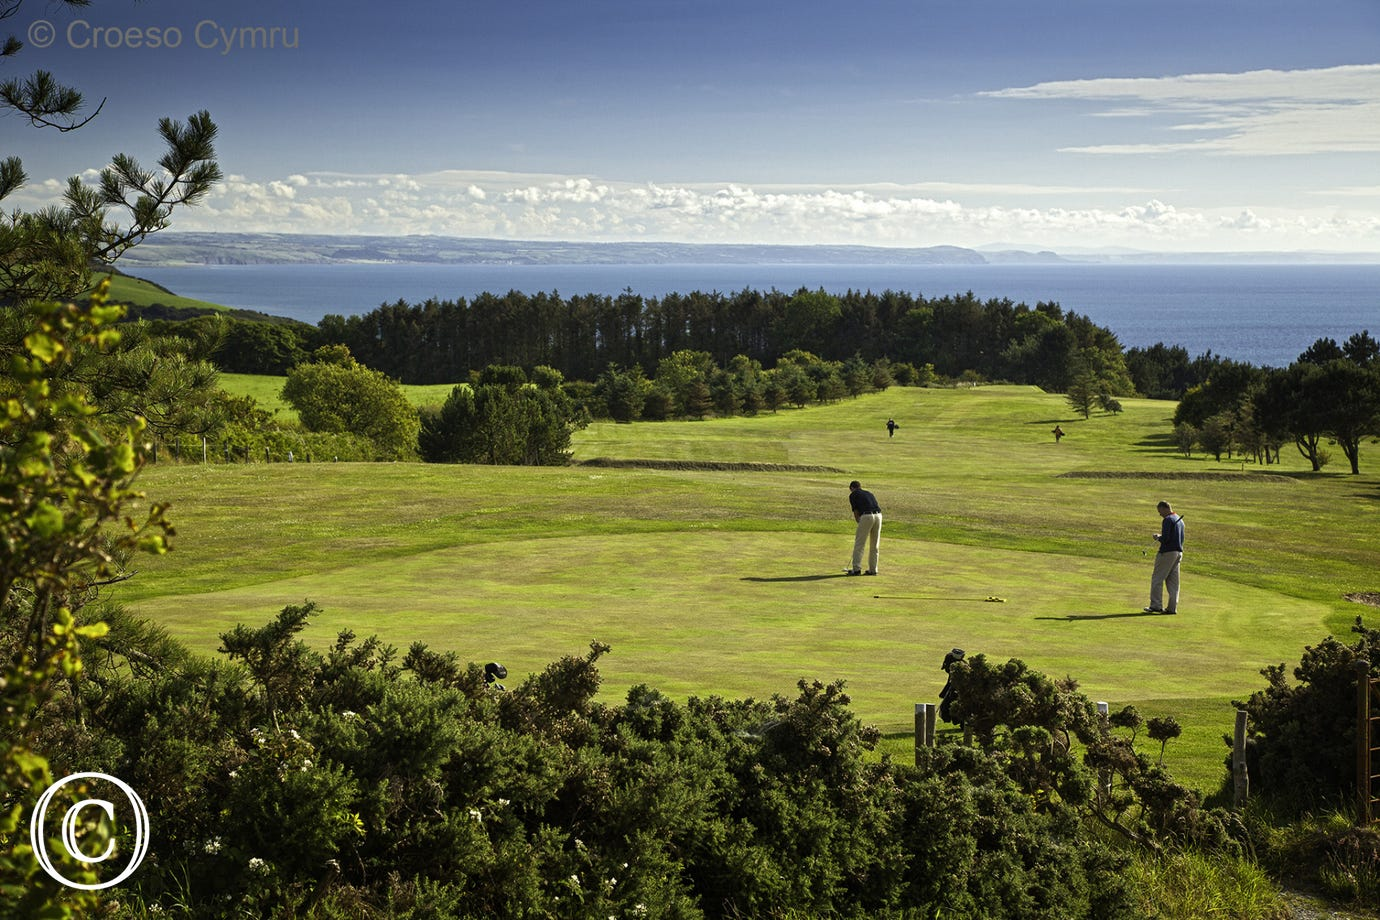 Enjoy a scenic round of golf at Aberystwyth Golf Club